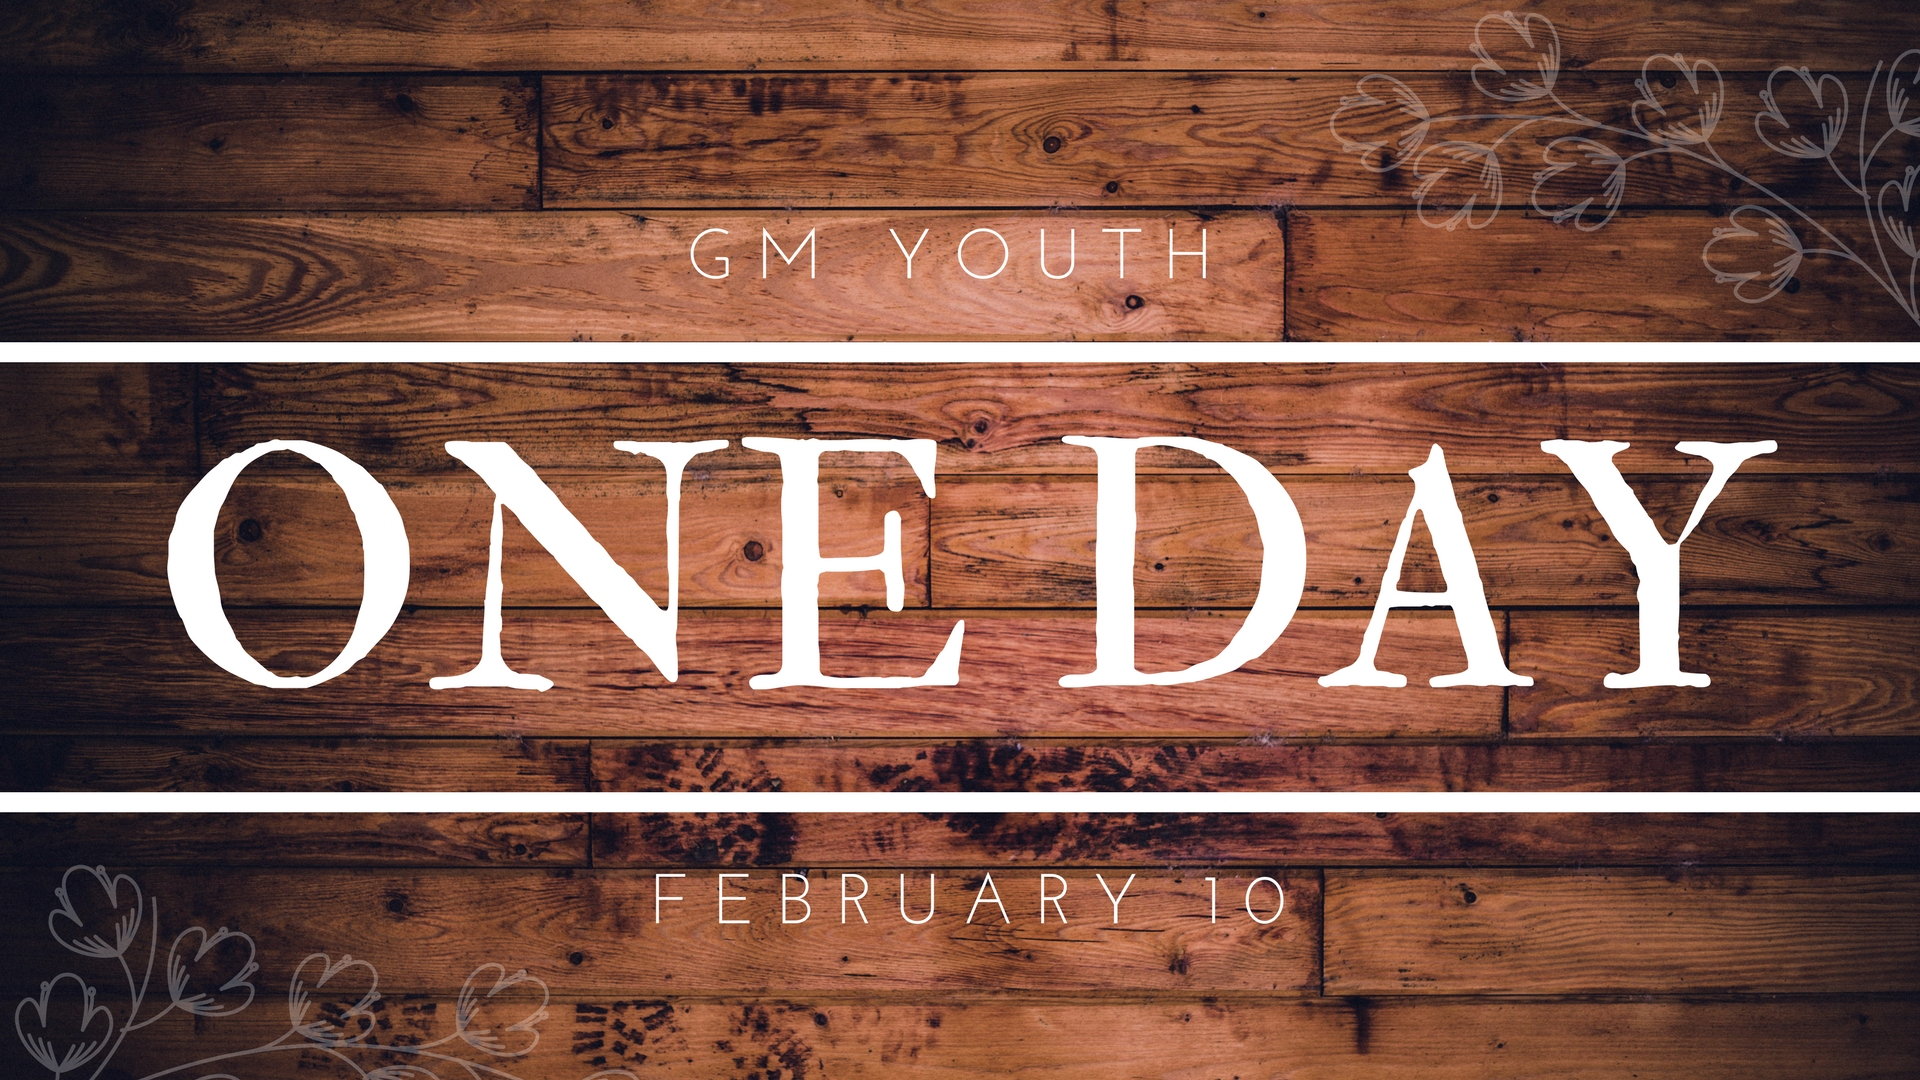 GM Youth: One Day Event